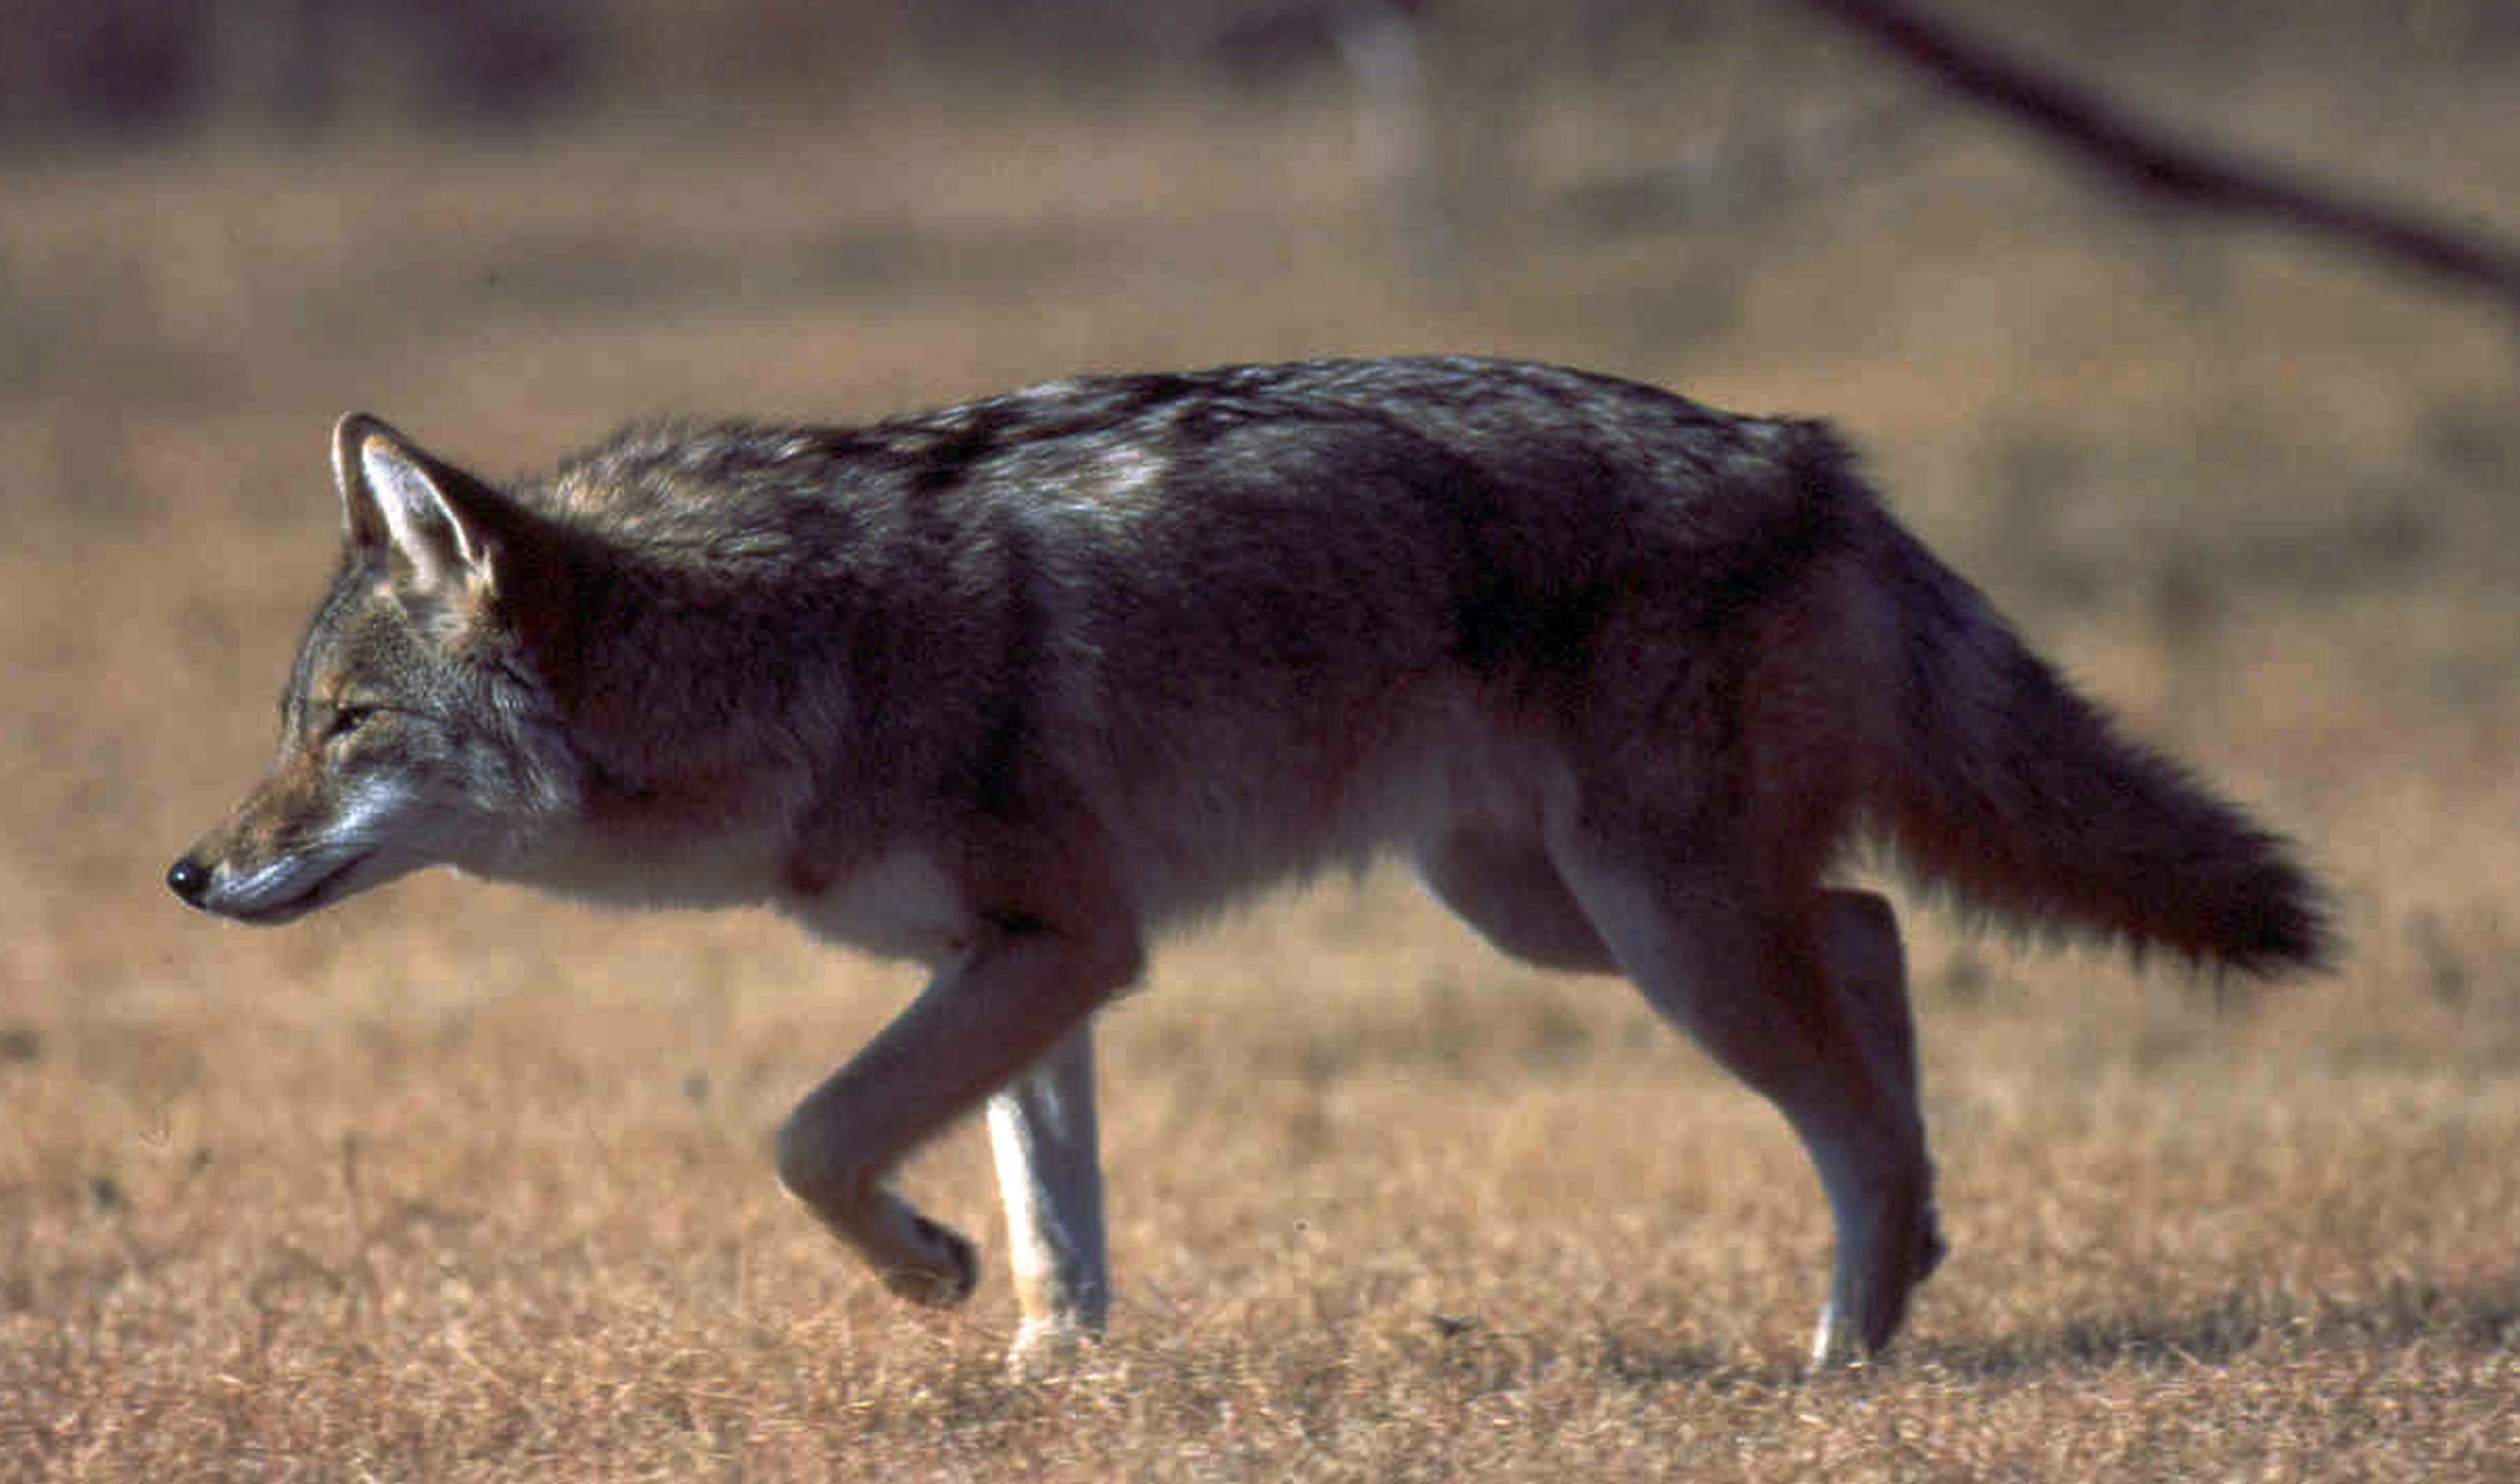 Do you how to prevent or manage conflict with coyotes?